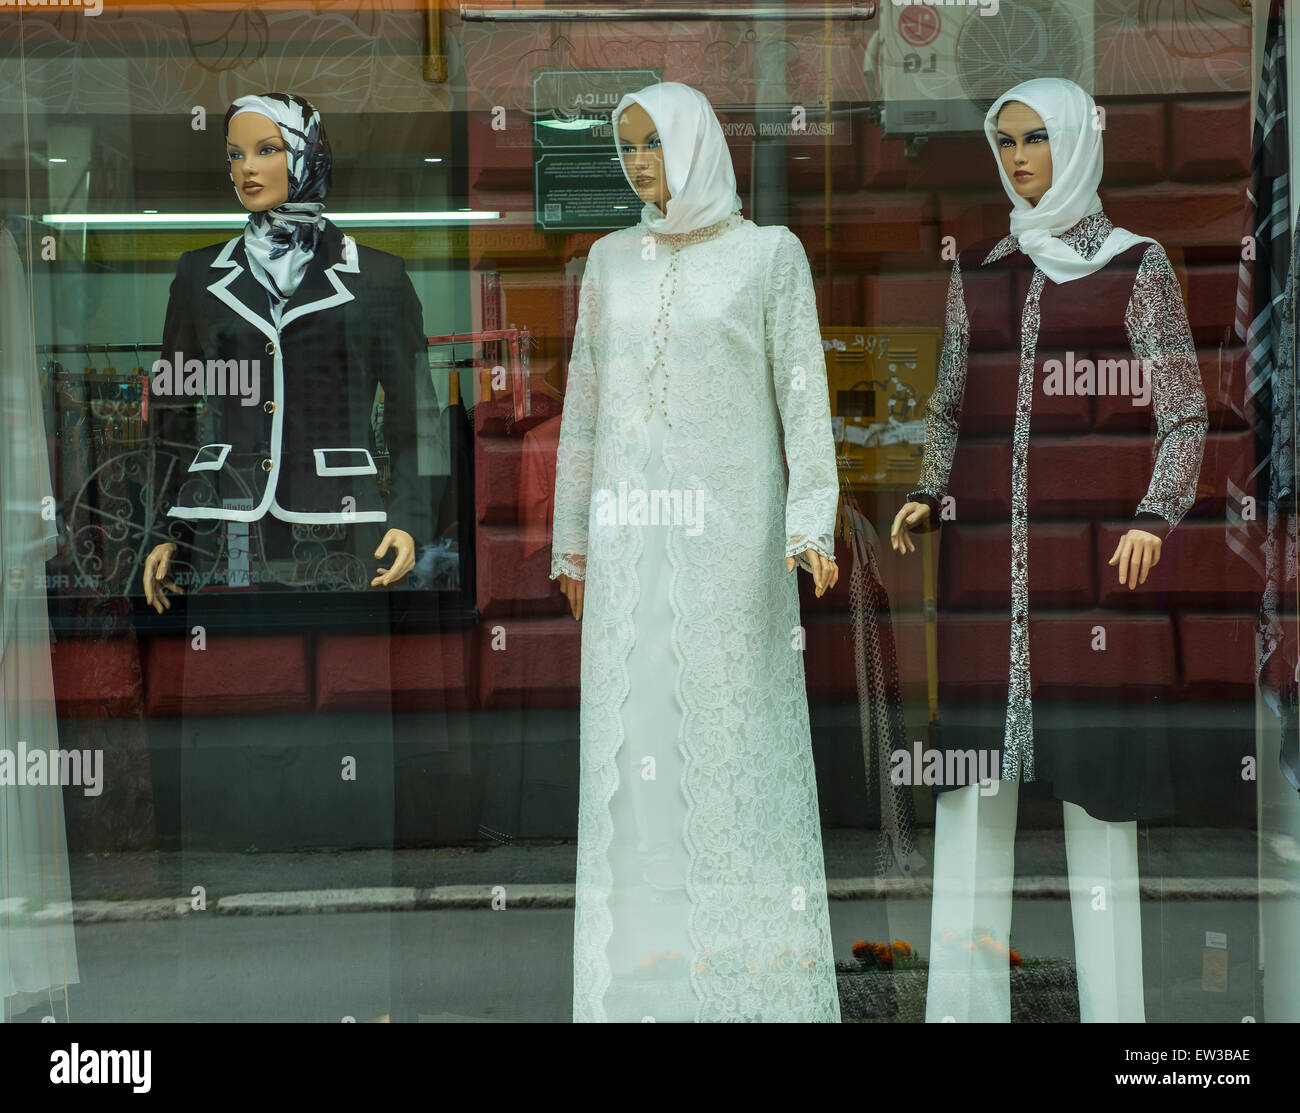 Islamic Fashion Stock Photos & Islamic Fashion Stock Images - Alamy